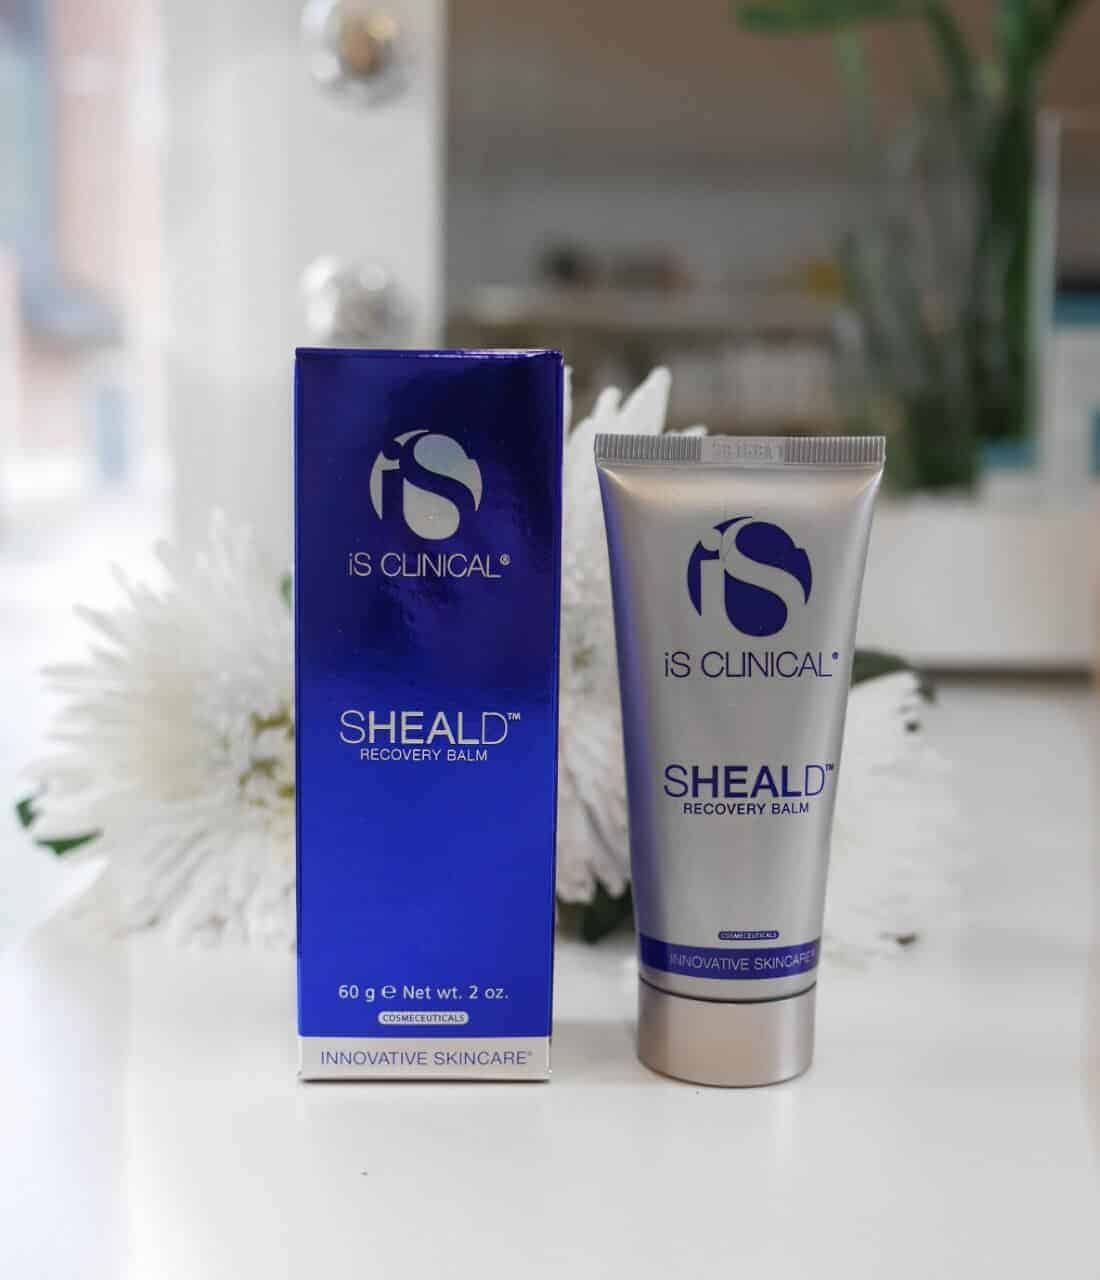 Is clinical sheald balm